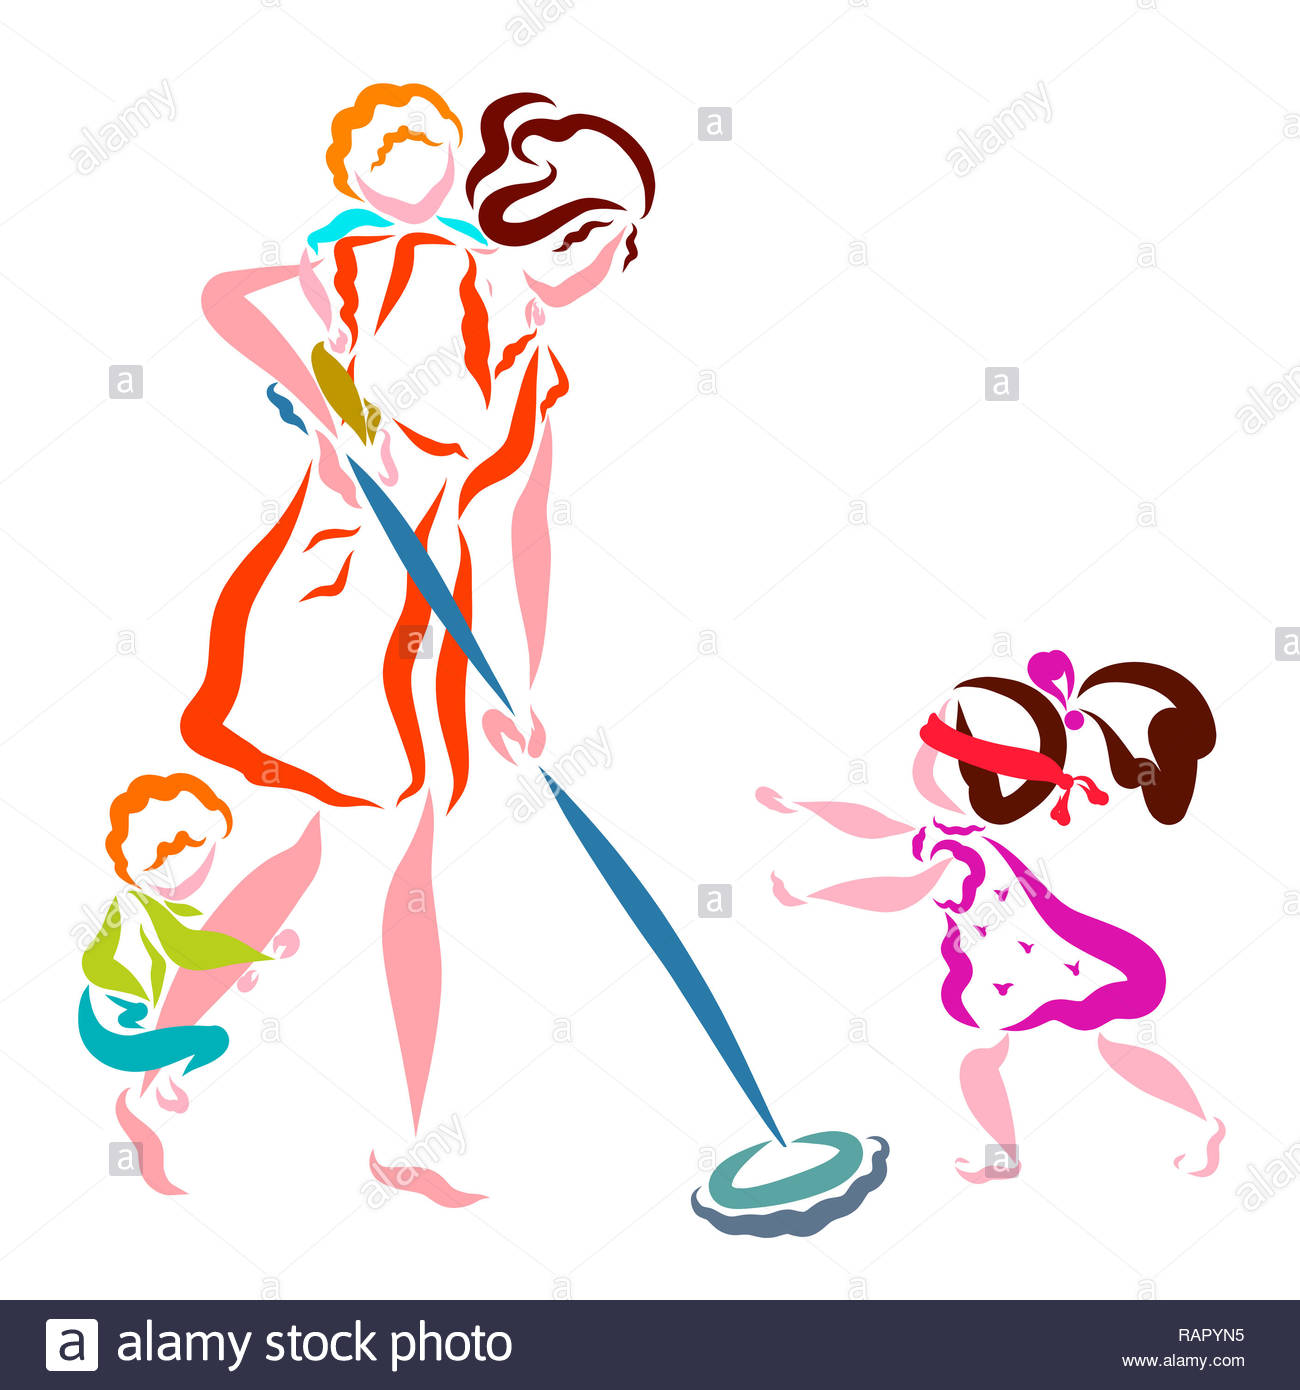 Mom washes the floors, children play hide-and-seek and hide on mom - Stock Image